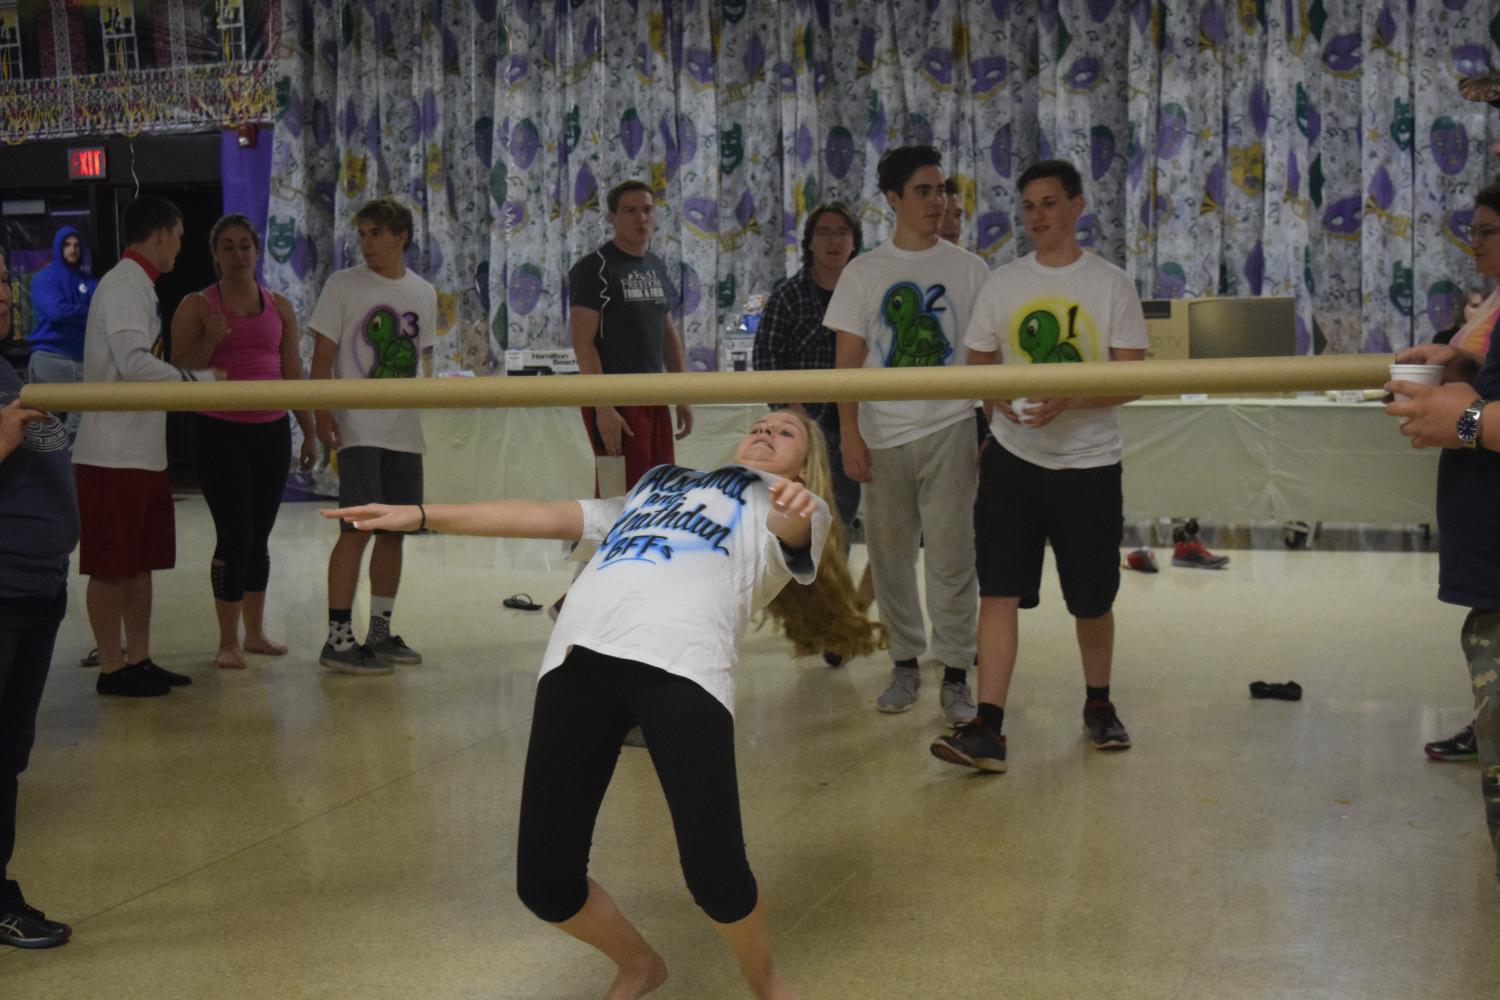 Ally Schmiedlin, along with other seniors, enjoy a game of limbo at Project Graduation.